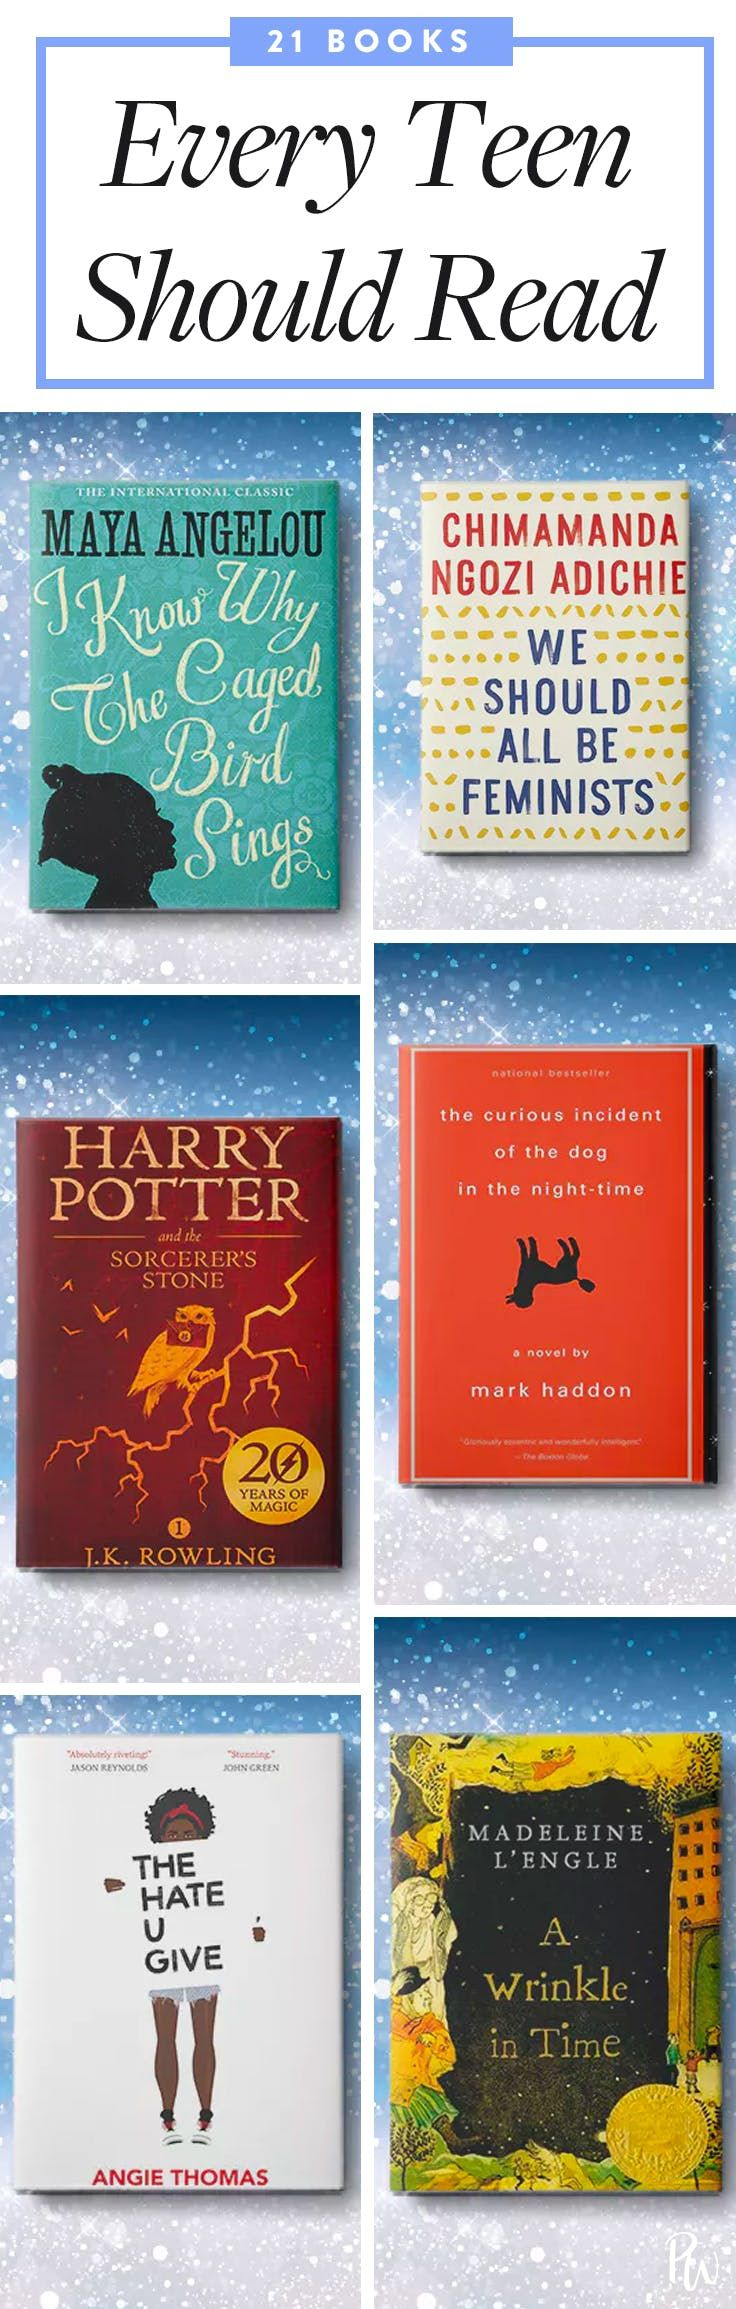 21 Books Every Teenager Should Read Books For Teens Teens Reading Good Books